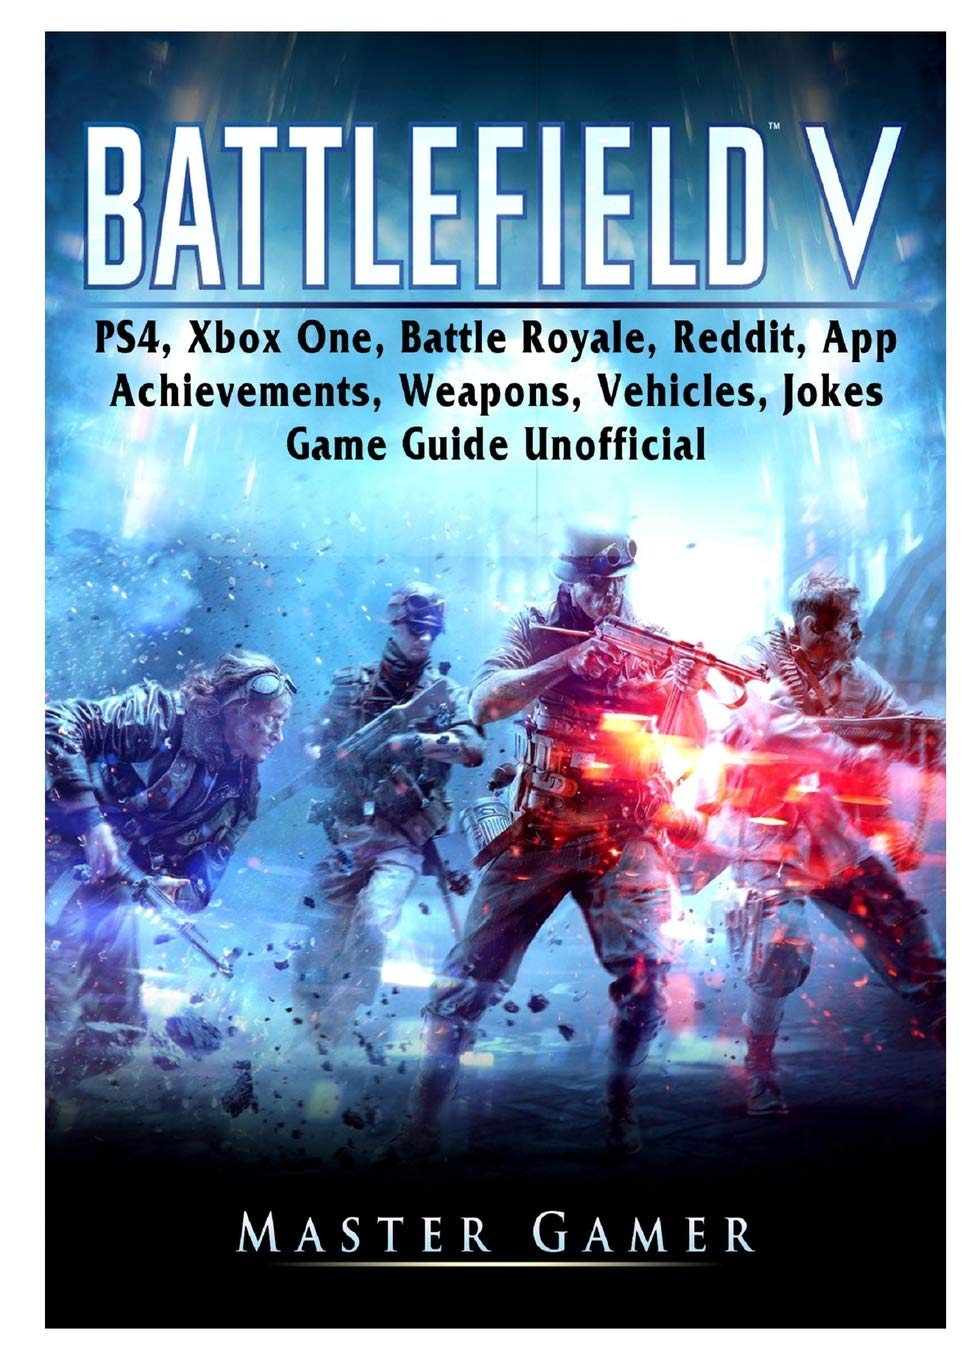 Battlefield V, PS4, Xbox One, Battle Royale, Reddit, App, Achievements, Weapons, Vehicles, Jokes, Game Guide Unofficial: Amazon.es: Gamer, Master: Libros en idiomas extranjeros